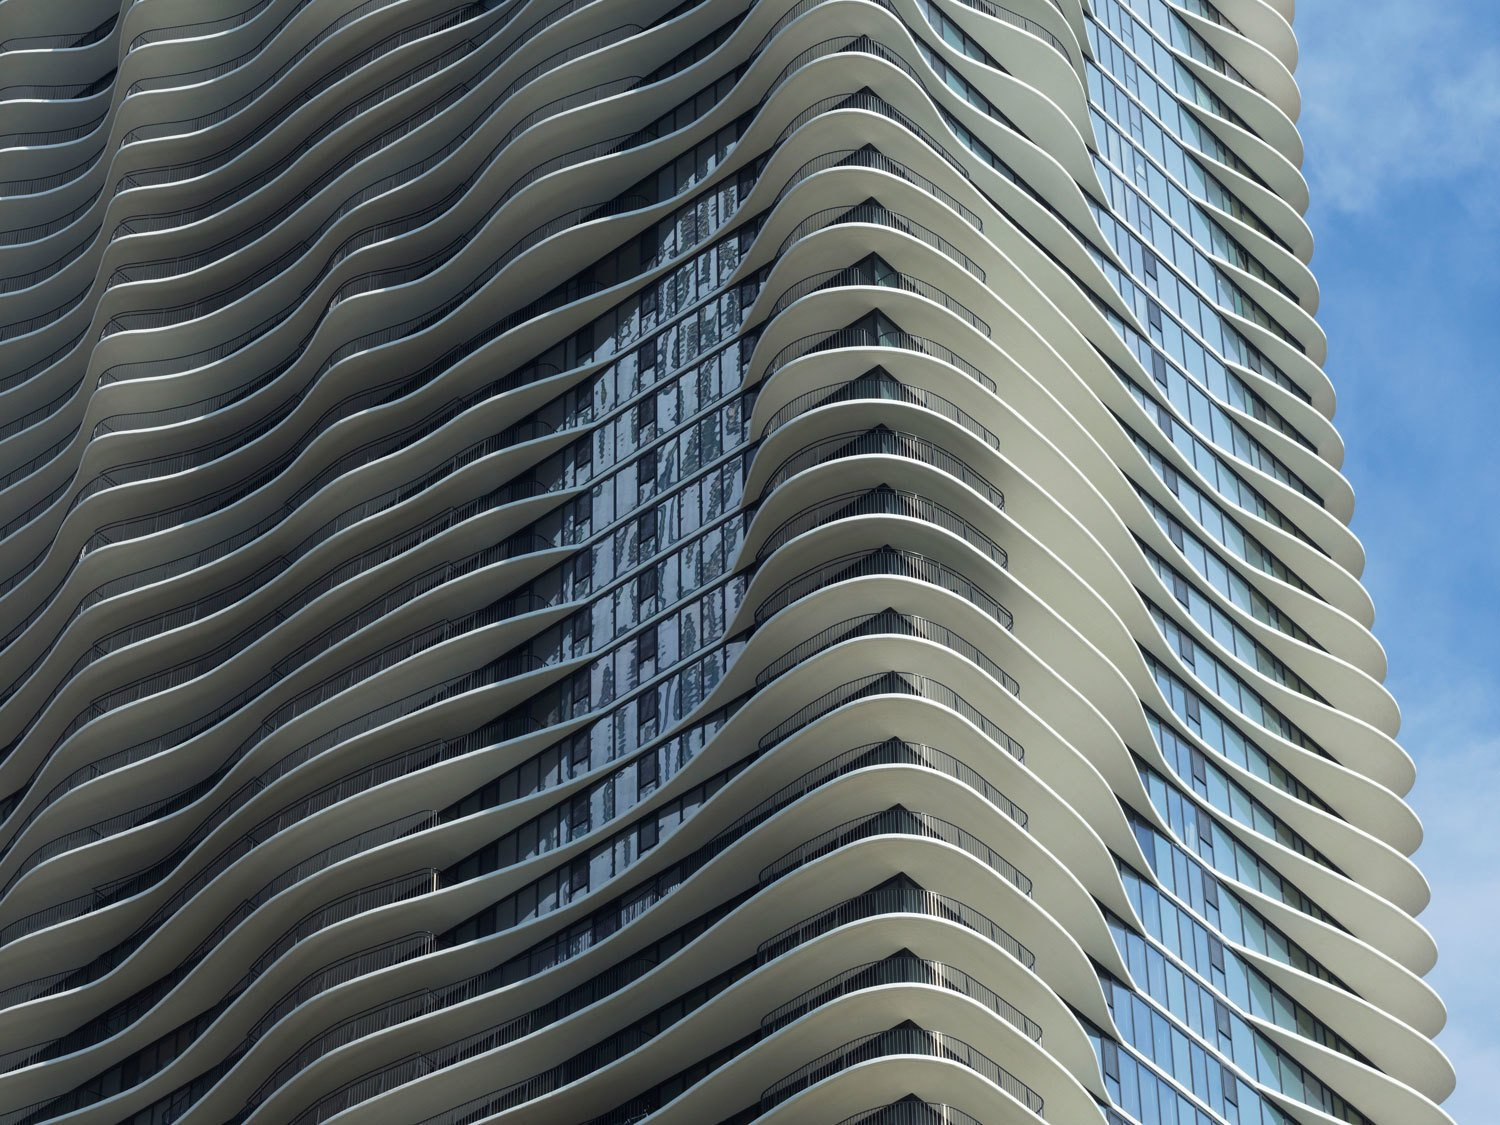 Architecture Inspiration of the Day: Aqua Tower in Chicago